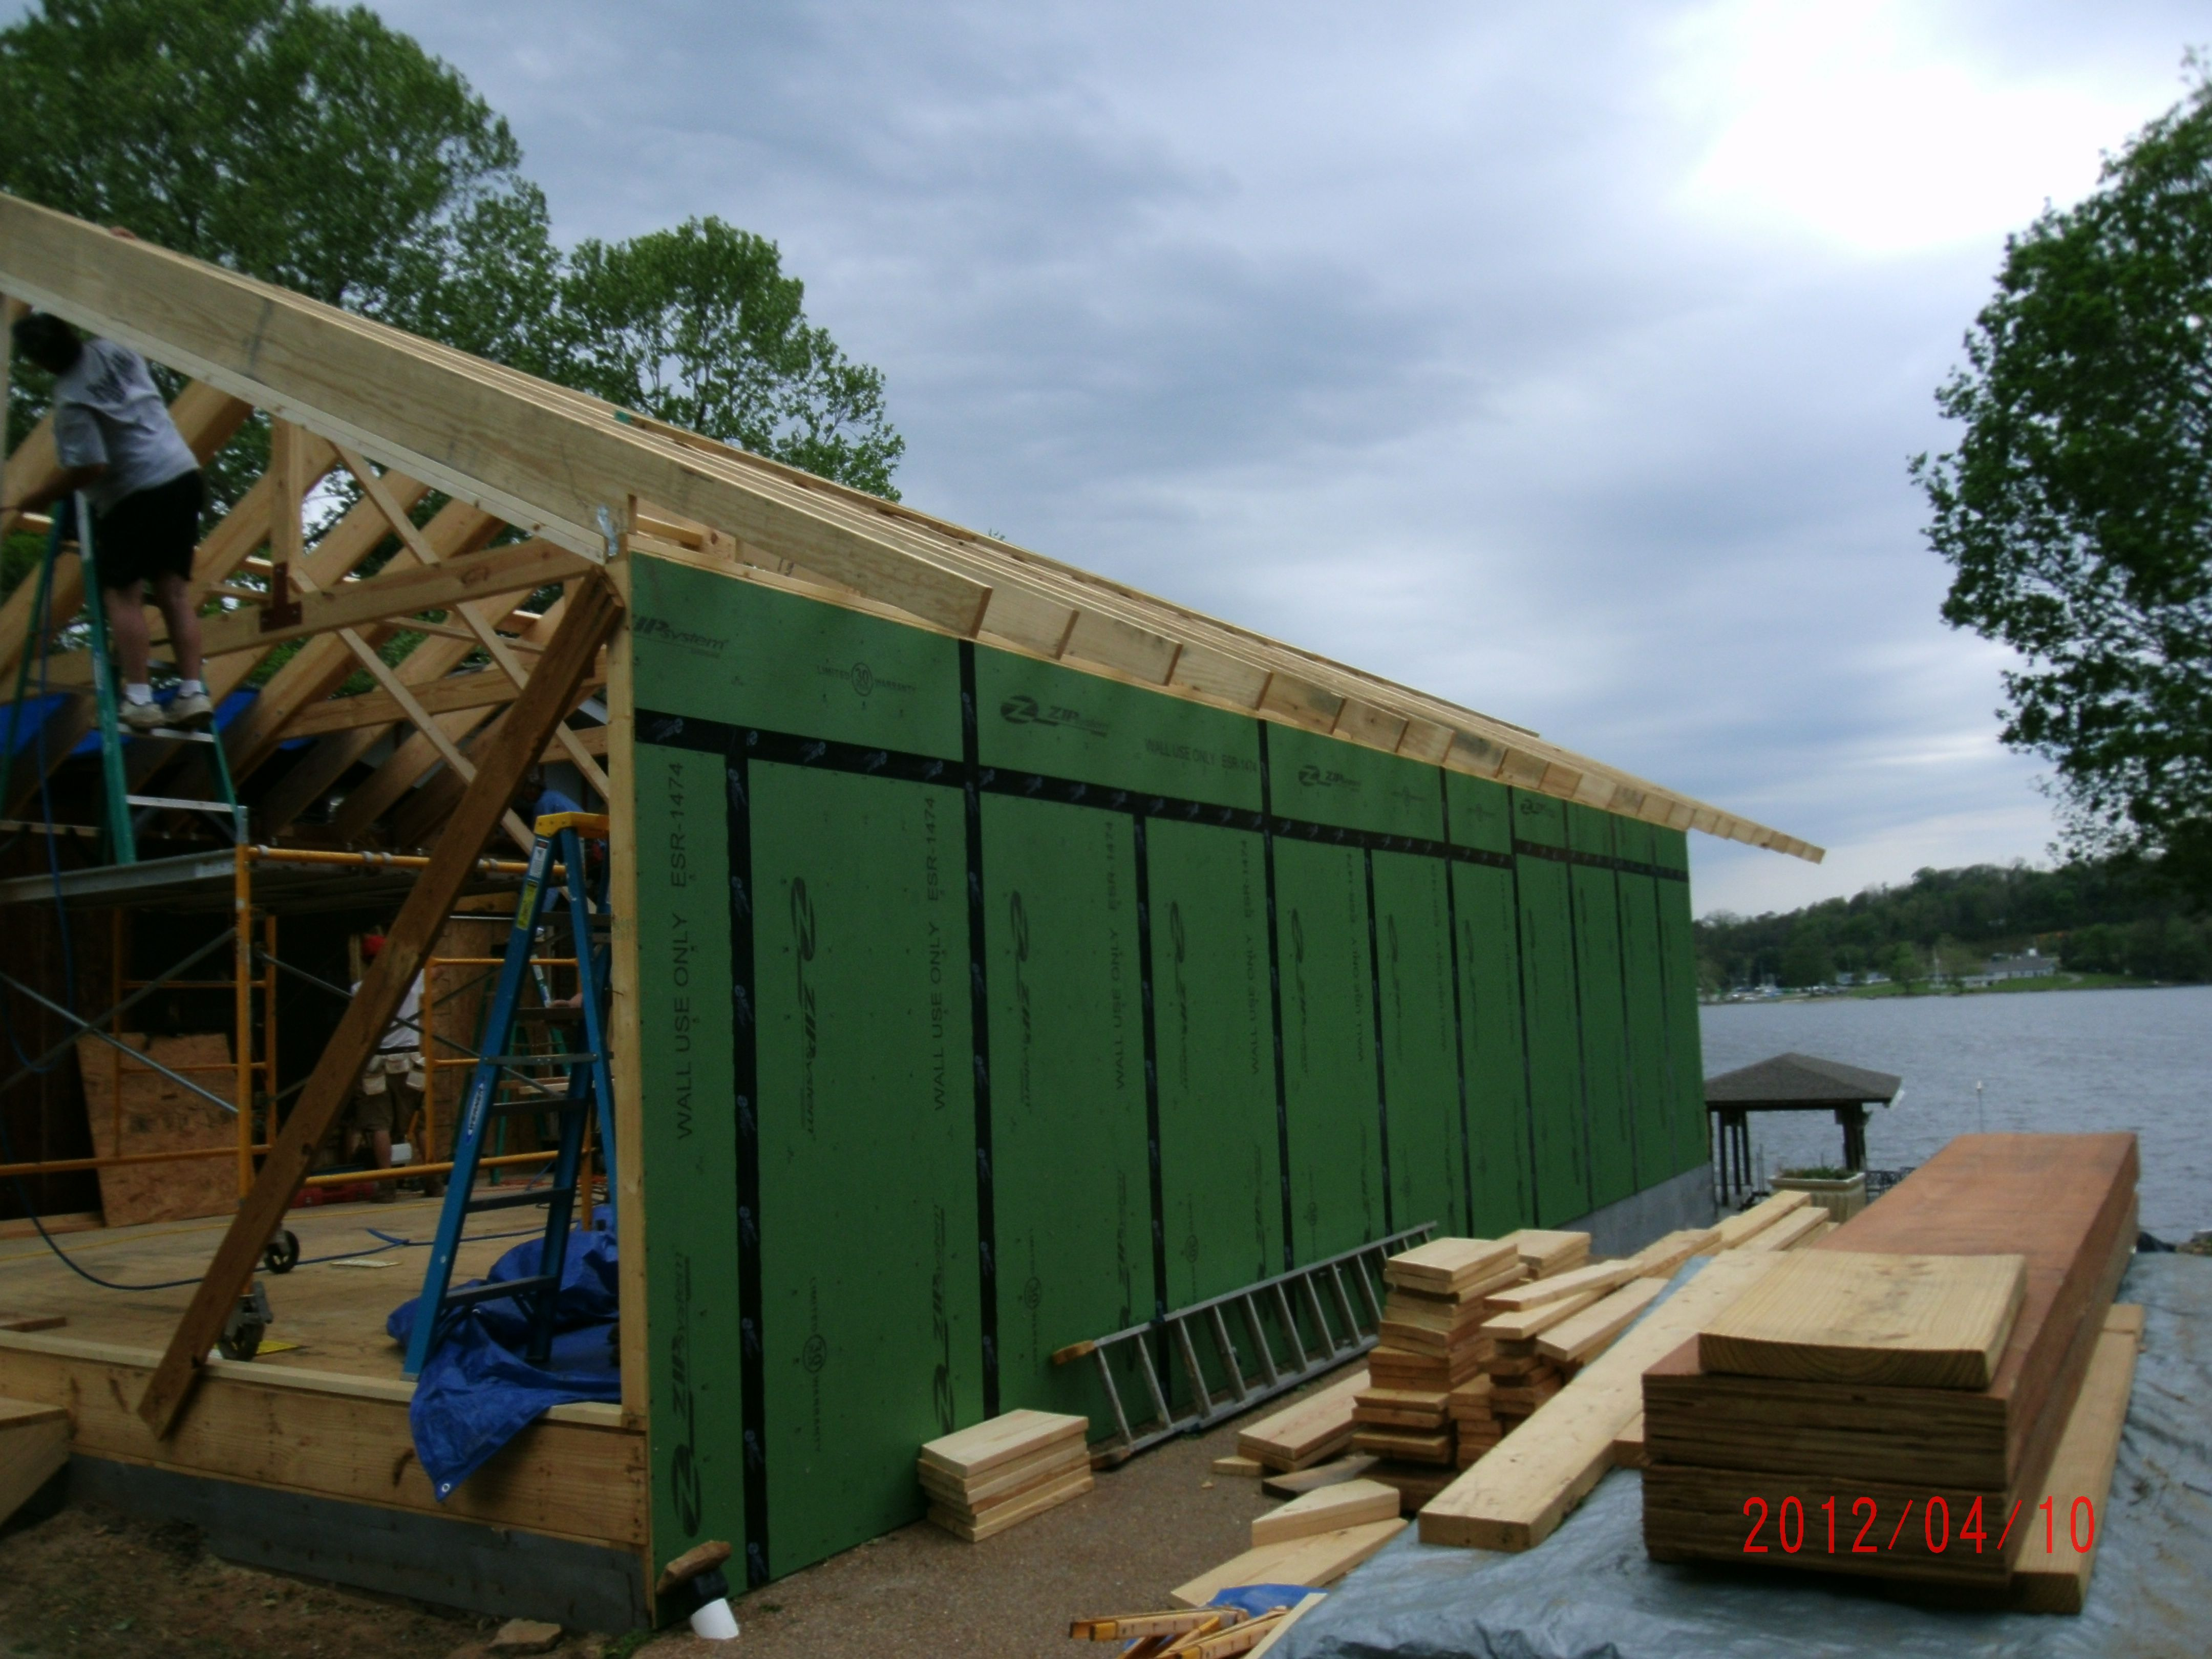 Home Addition - Intermediate Phase of Construction